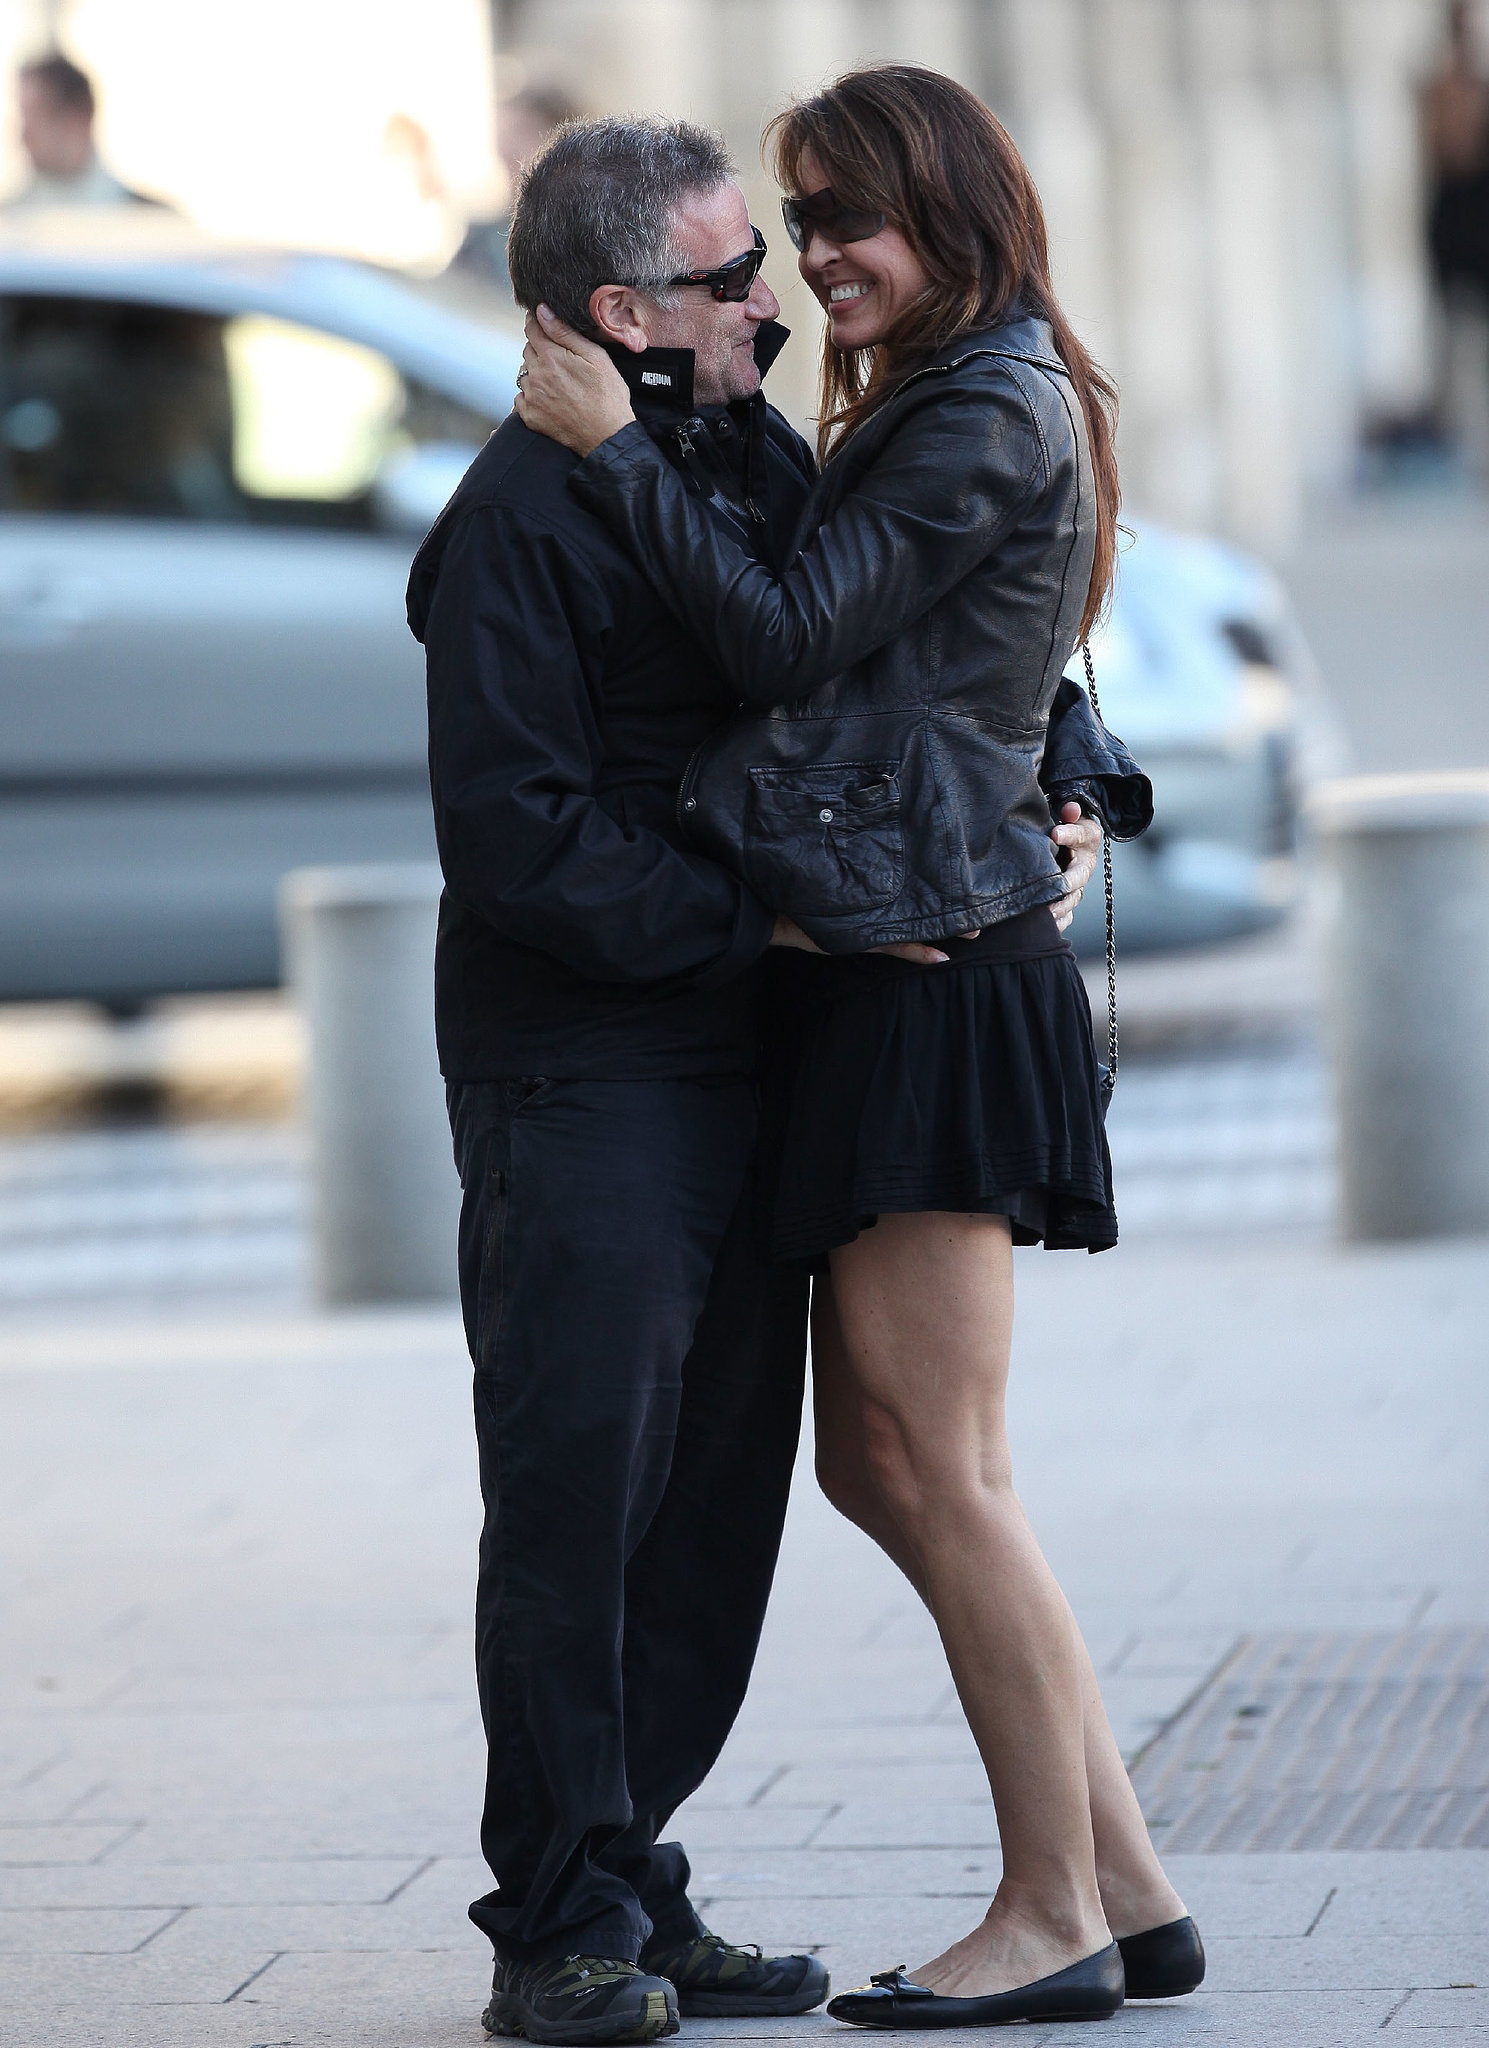 Robin Williams and his third wife Susan Schneider went to the City of Lights for their 2011 honeymoon.